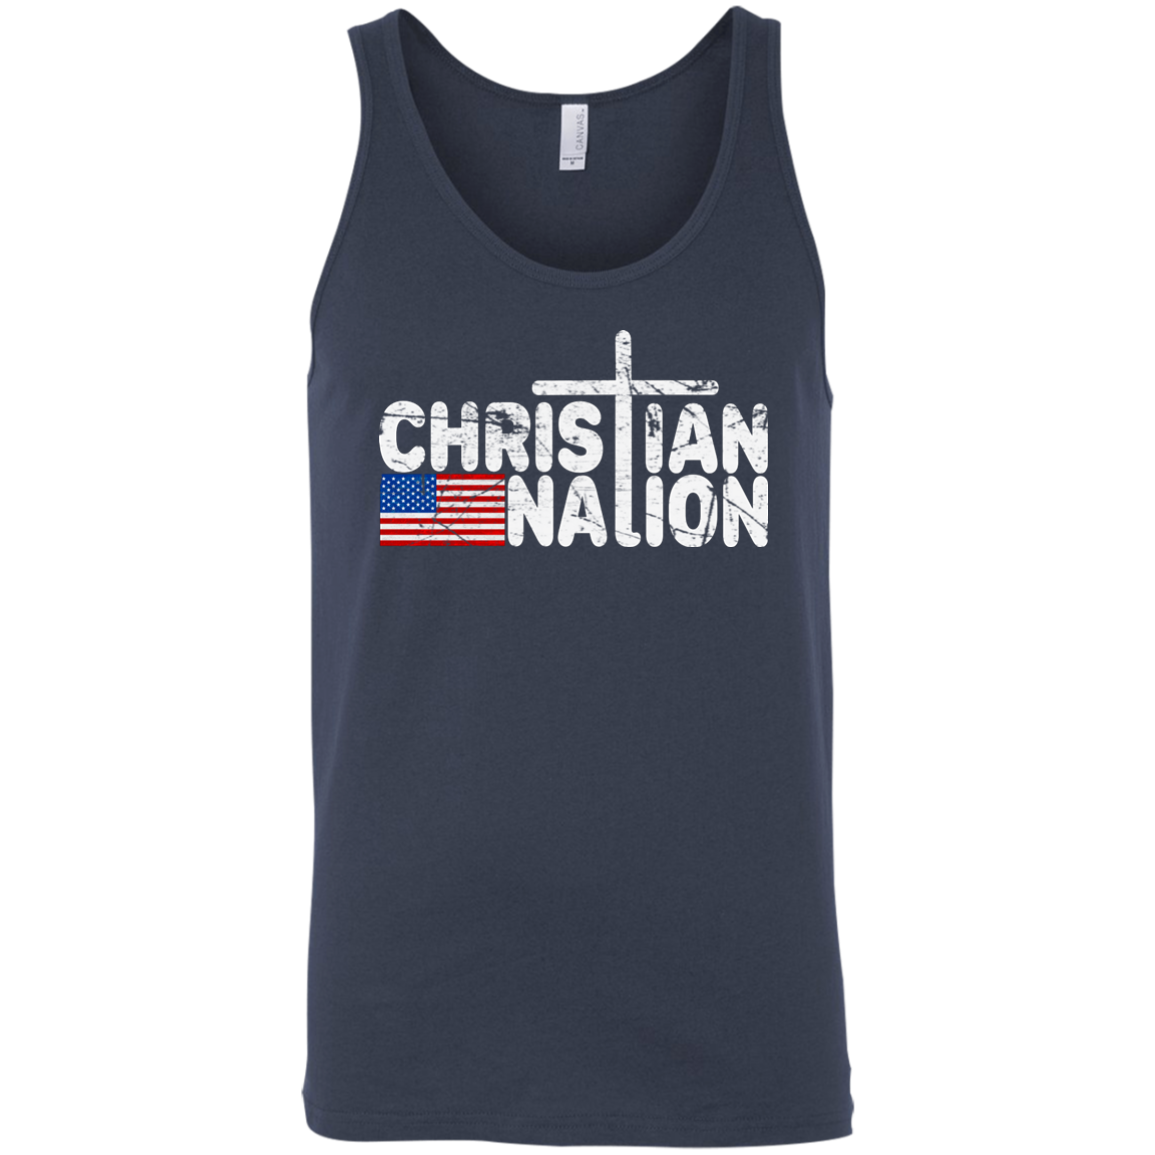 Christian Nation White Text Tank Tops   Flag With Cross on Back XS 2XL